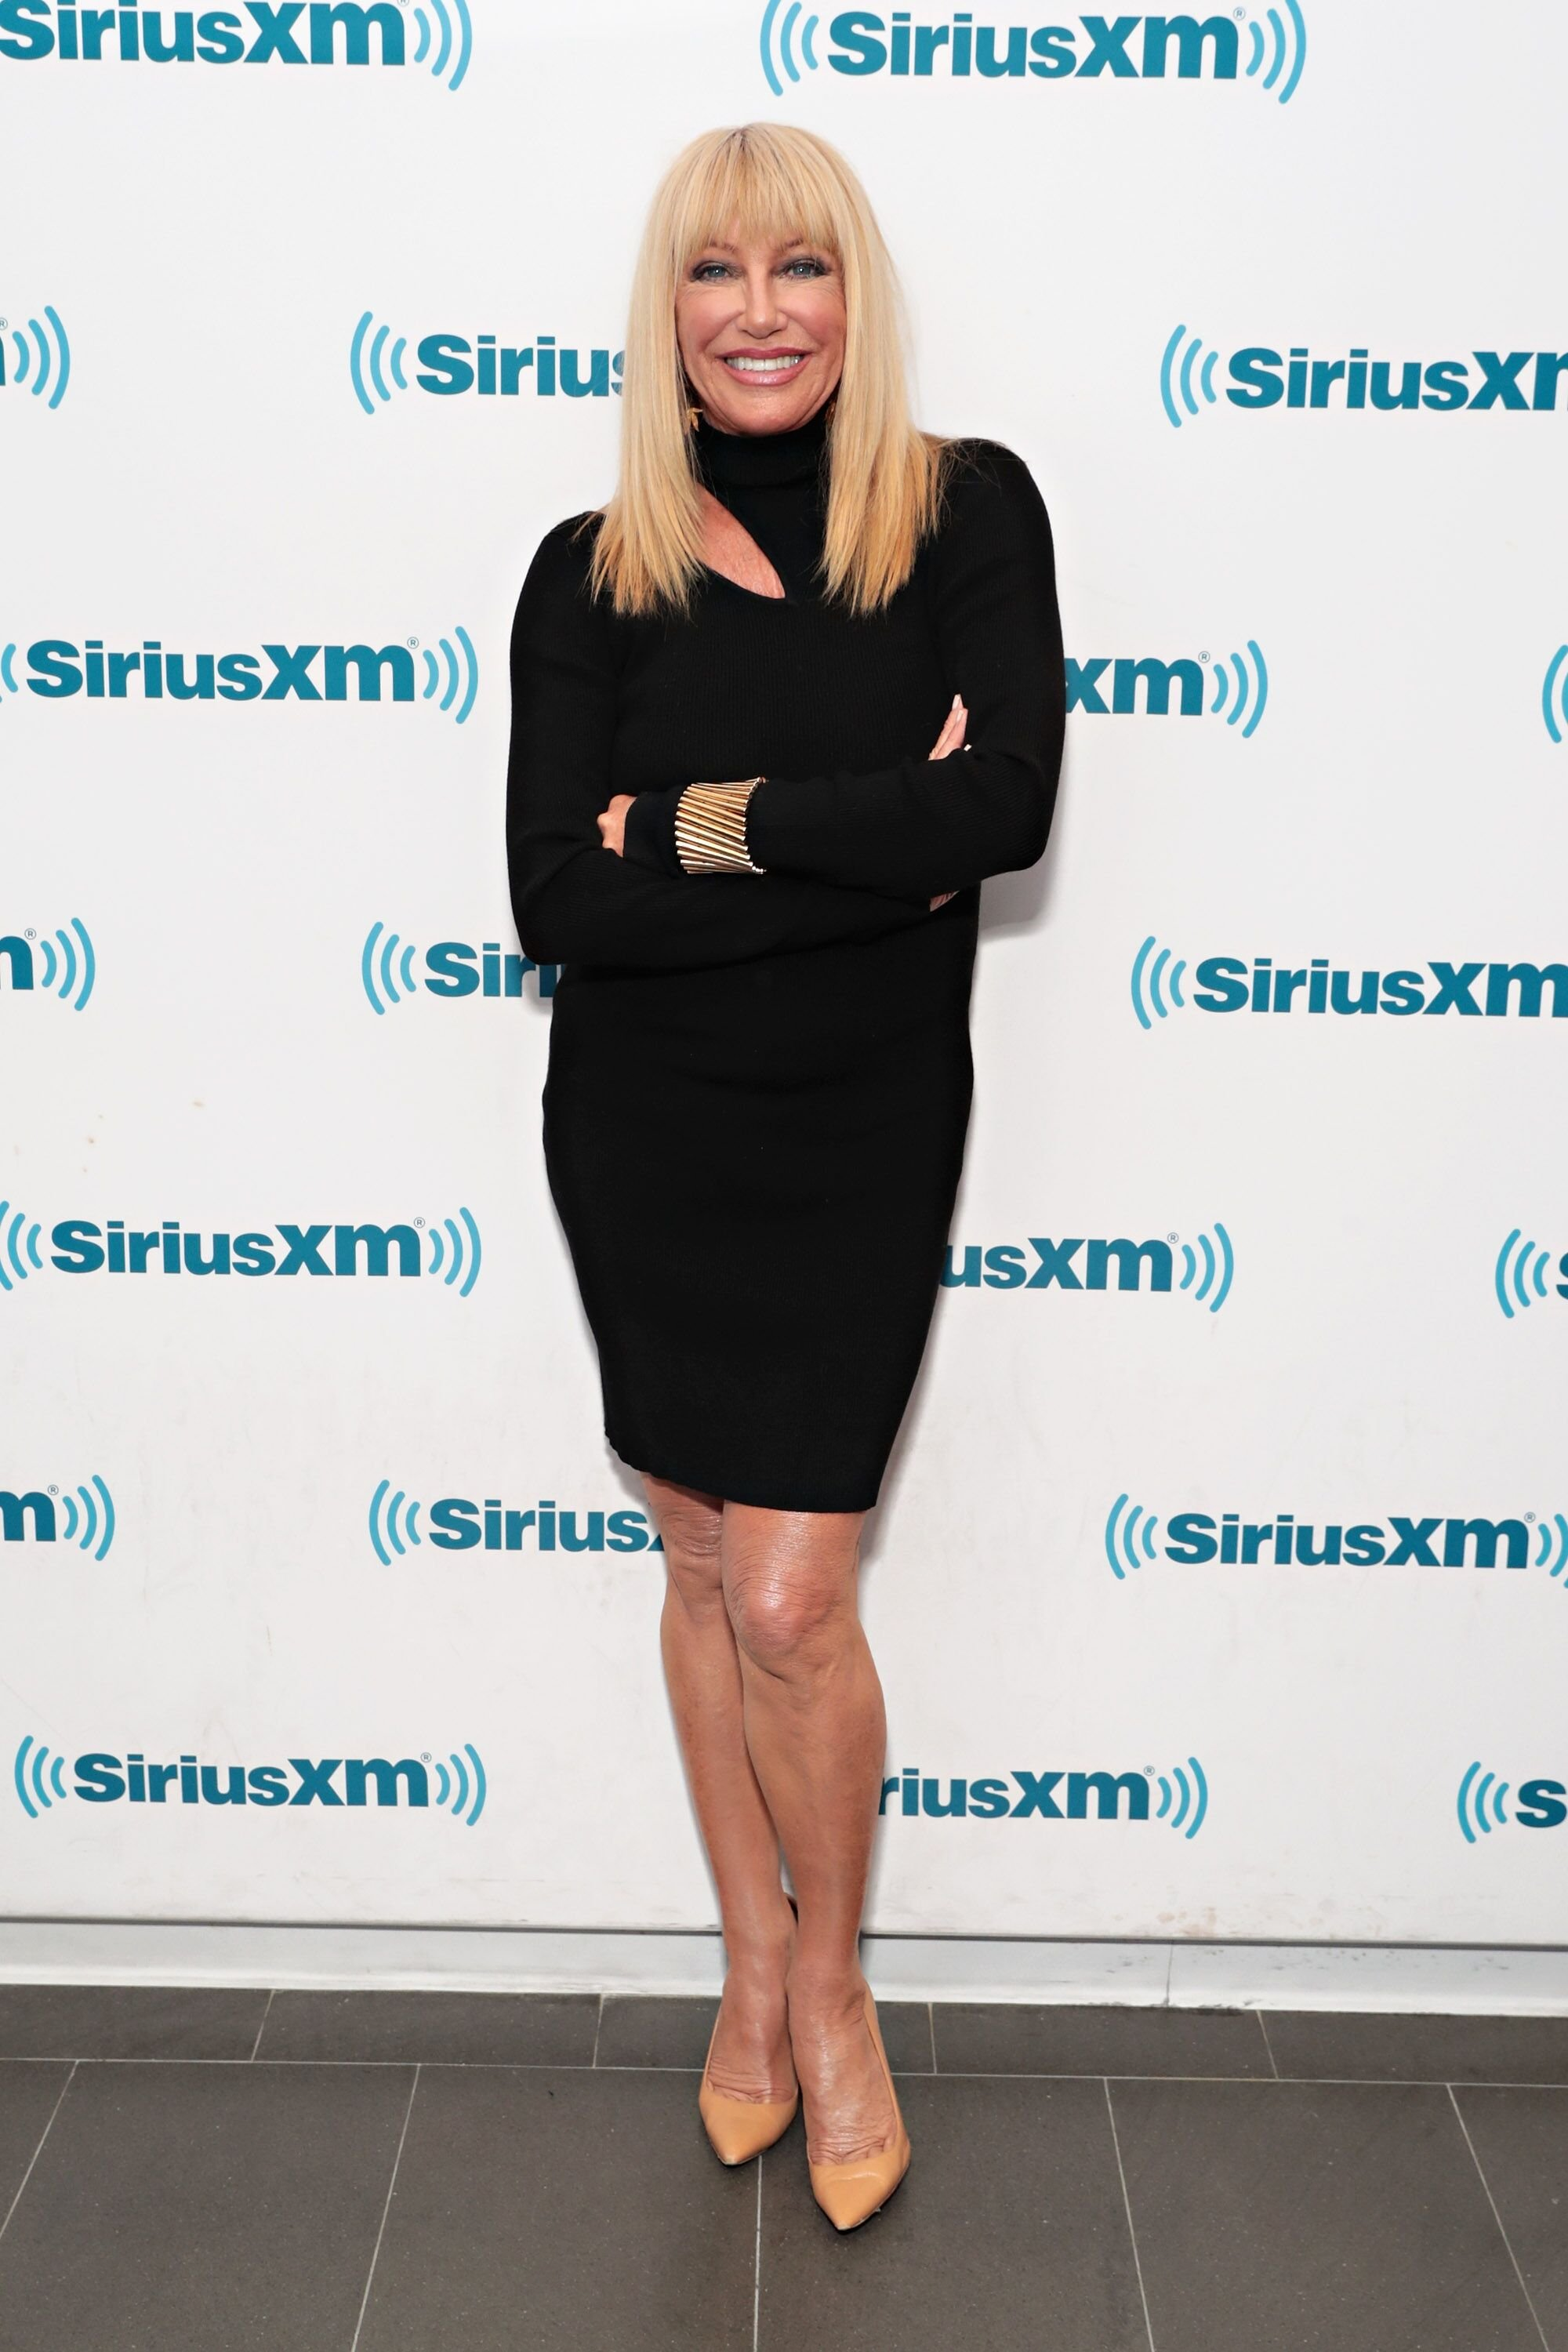 Actress Suzanne Somers visits the SiriusXM Studios on November 15, 2017 | Photo: Getty Images